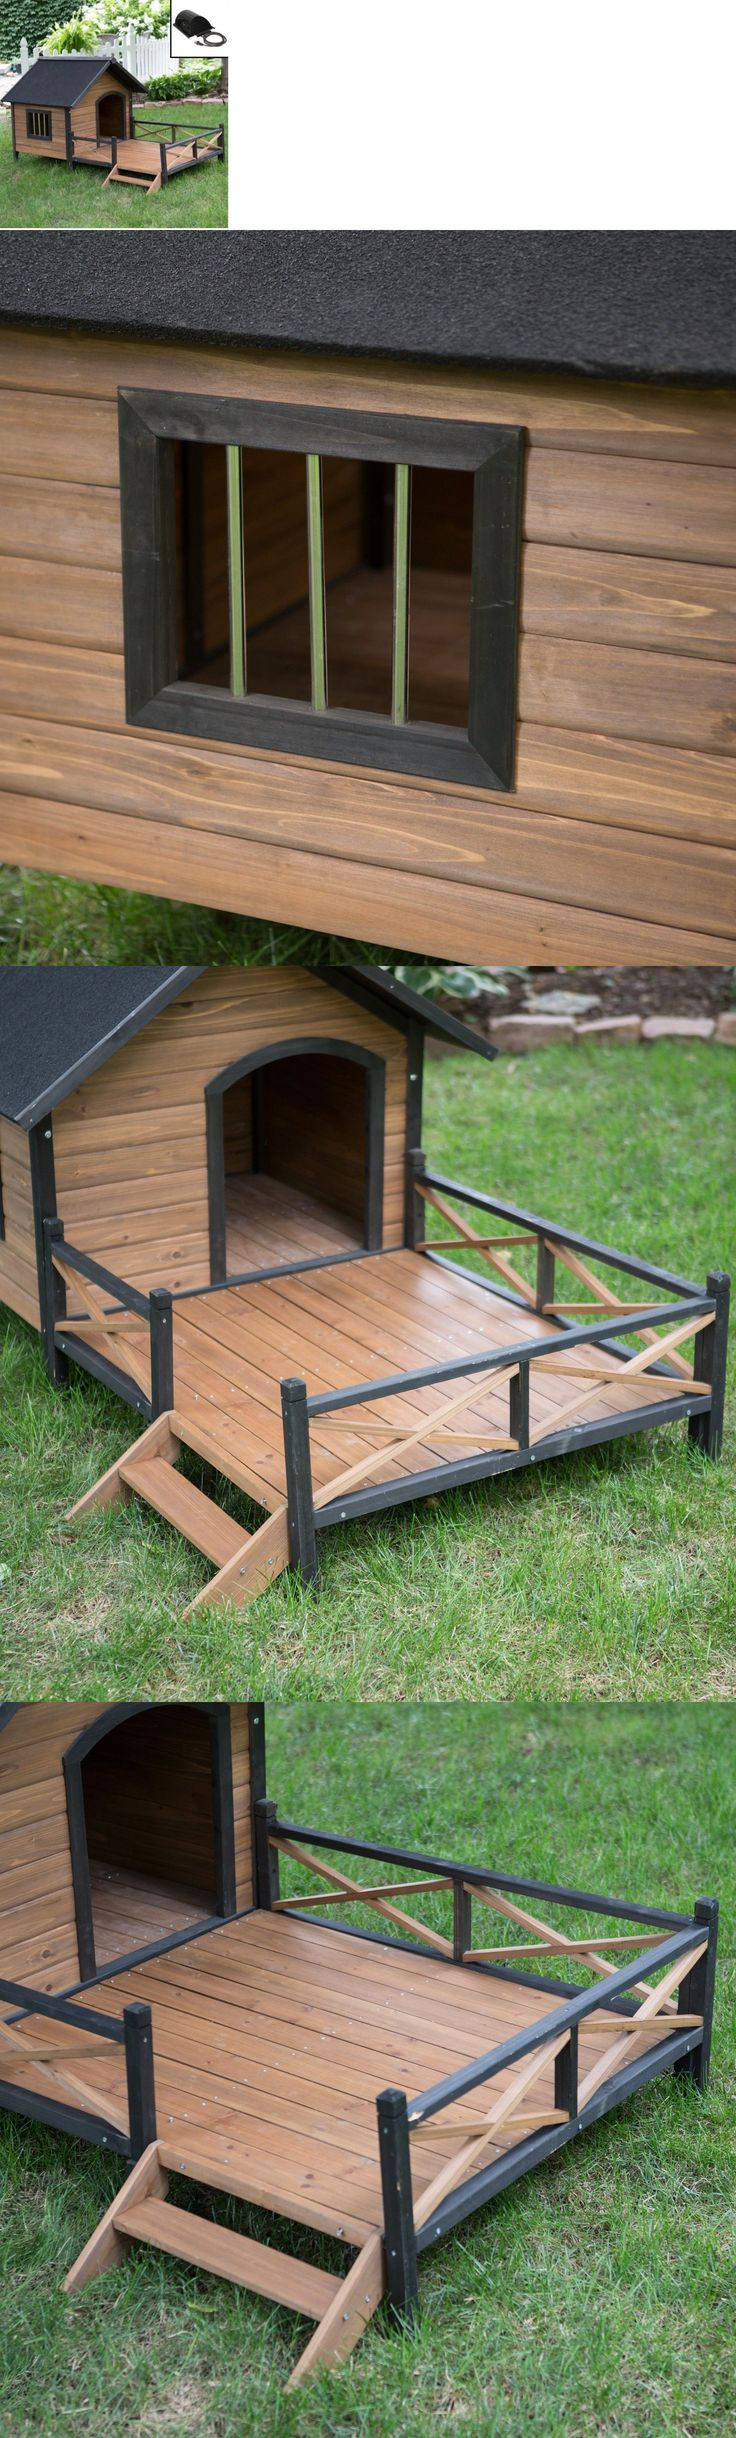 Dog Houses 108884: Large Dog House With Porch And Heater Pet Kennel Deluxe Rustic Wooden Heated -> BUY IT NOW ONLY: $338.98 on eBay!